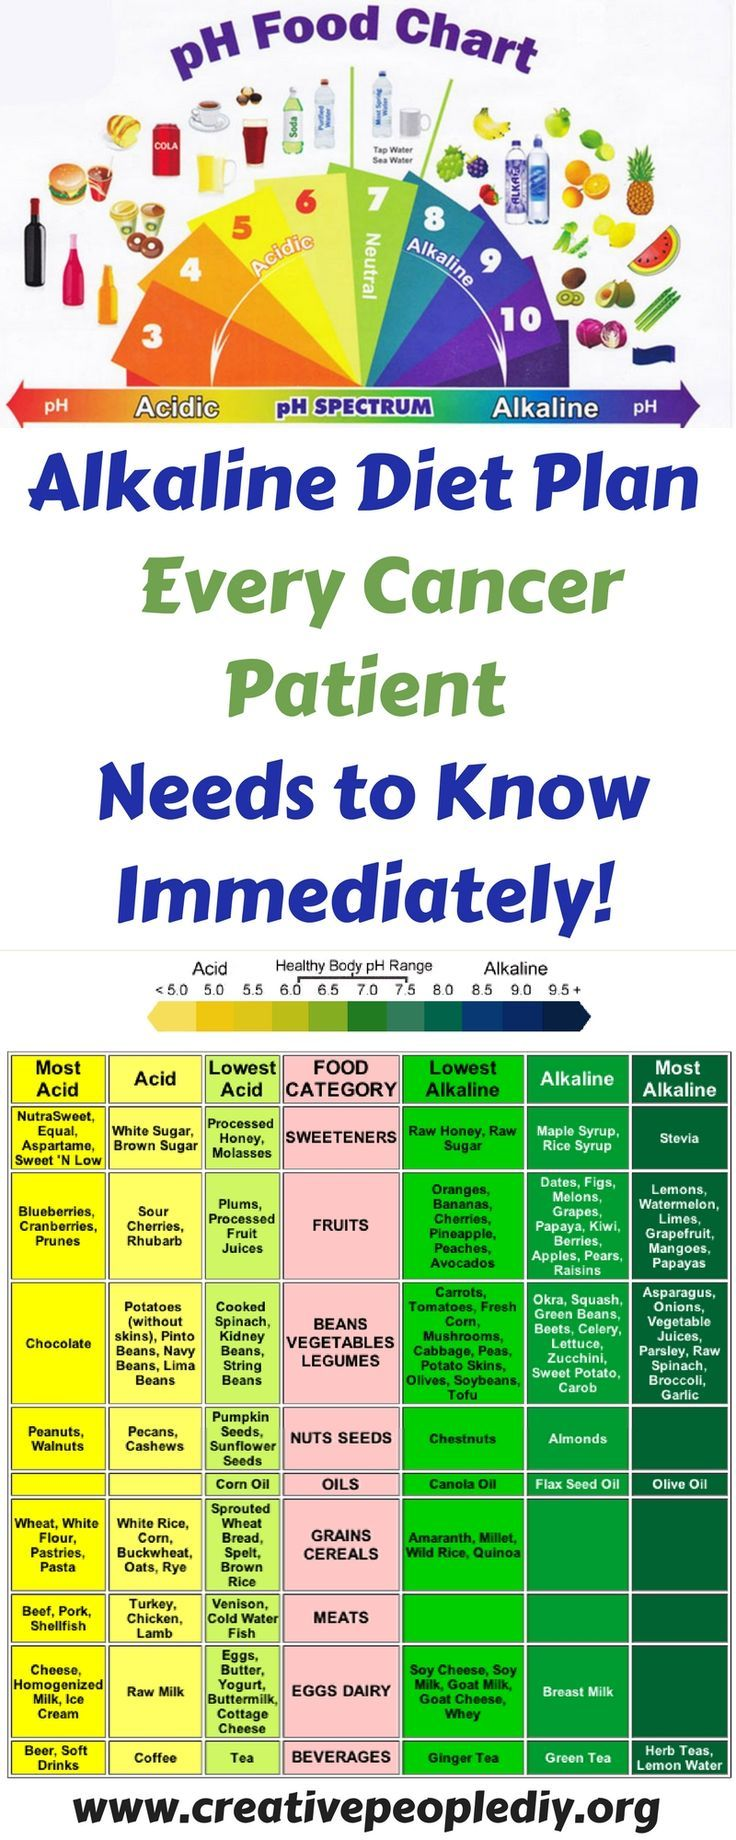 Alkaline Diet Plan That Every Cancer Patient Needs to Know (Immediately!)  #alkaline #cancer #every...